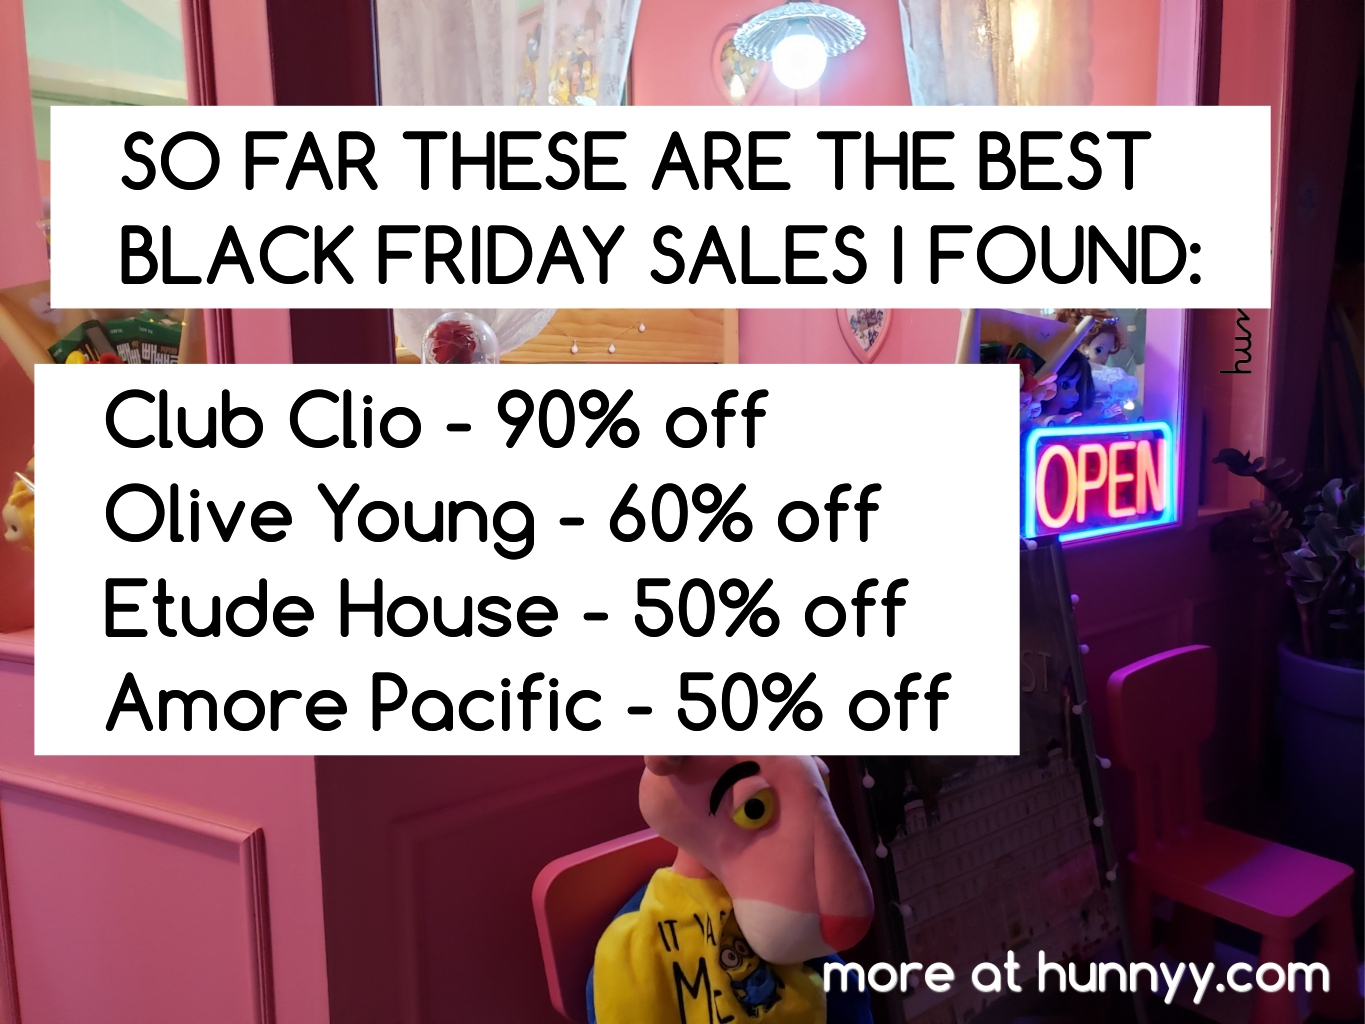 So Far These Are The Best Black Friday Sales!